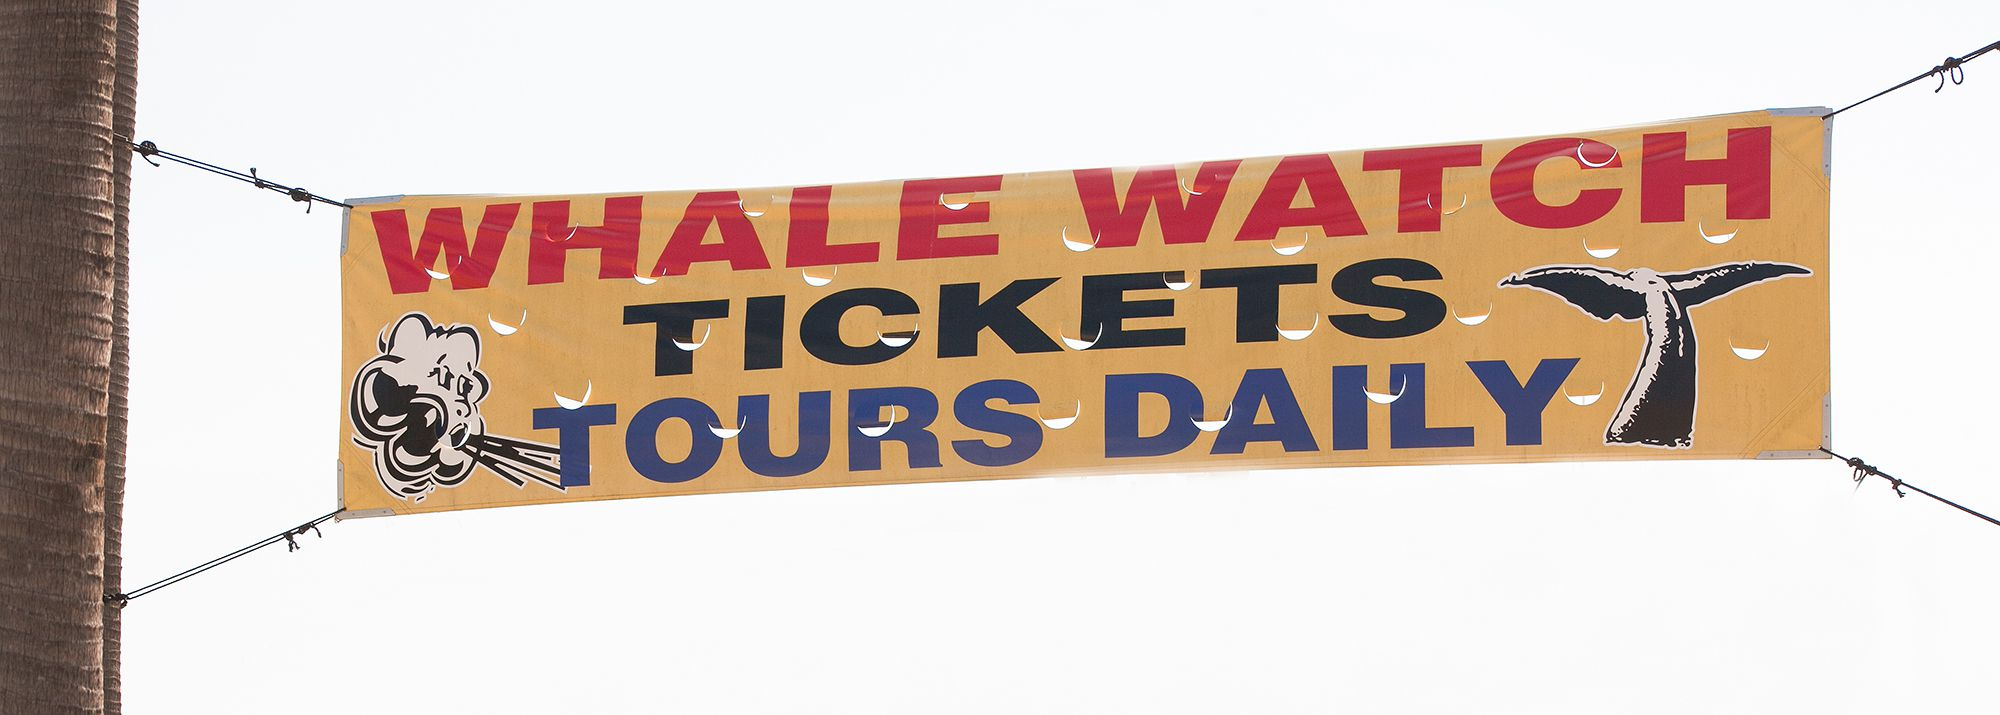 Whale watching tickets tours daily vinyl yellow banner sign